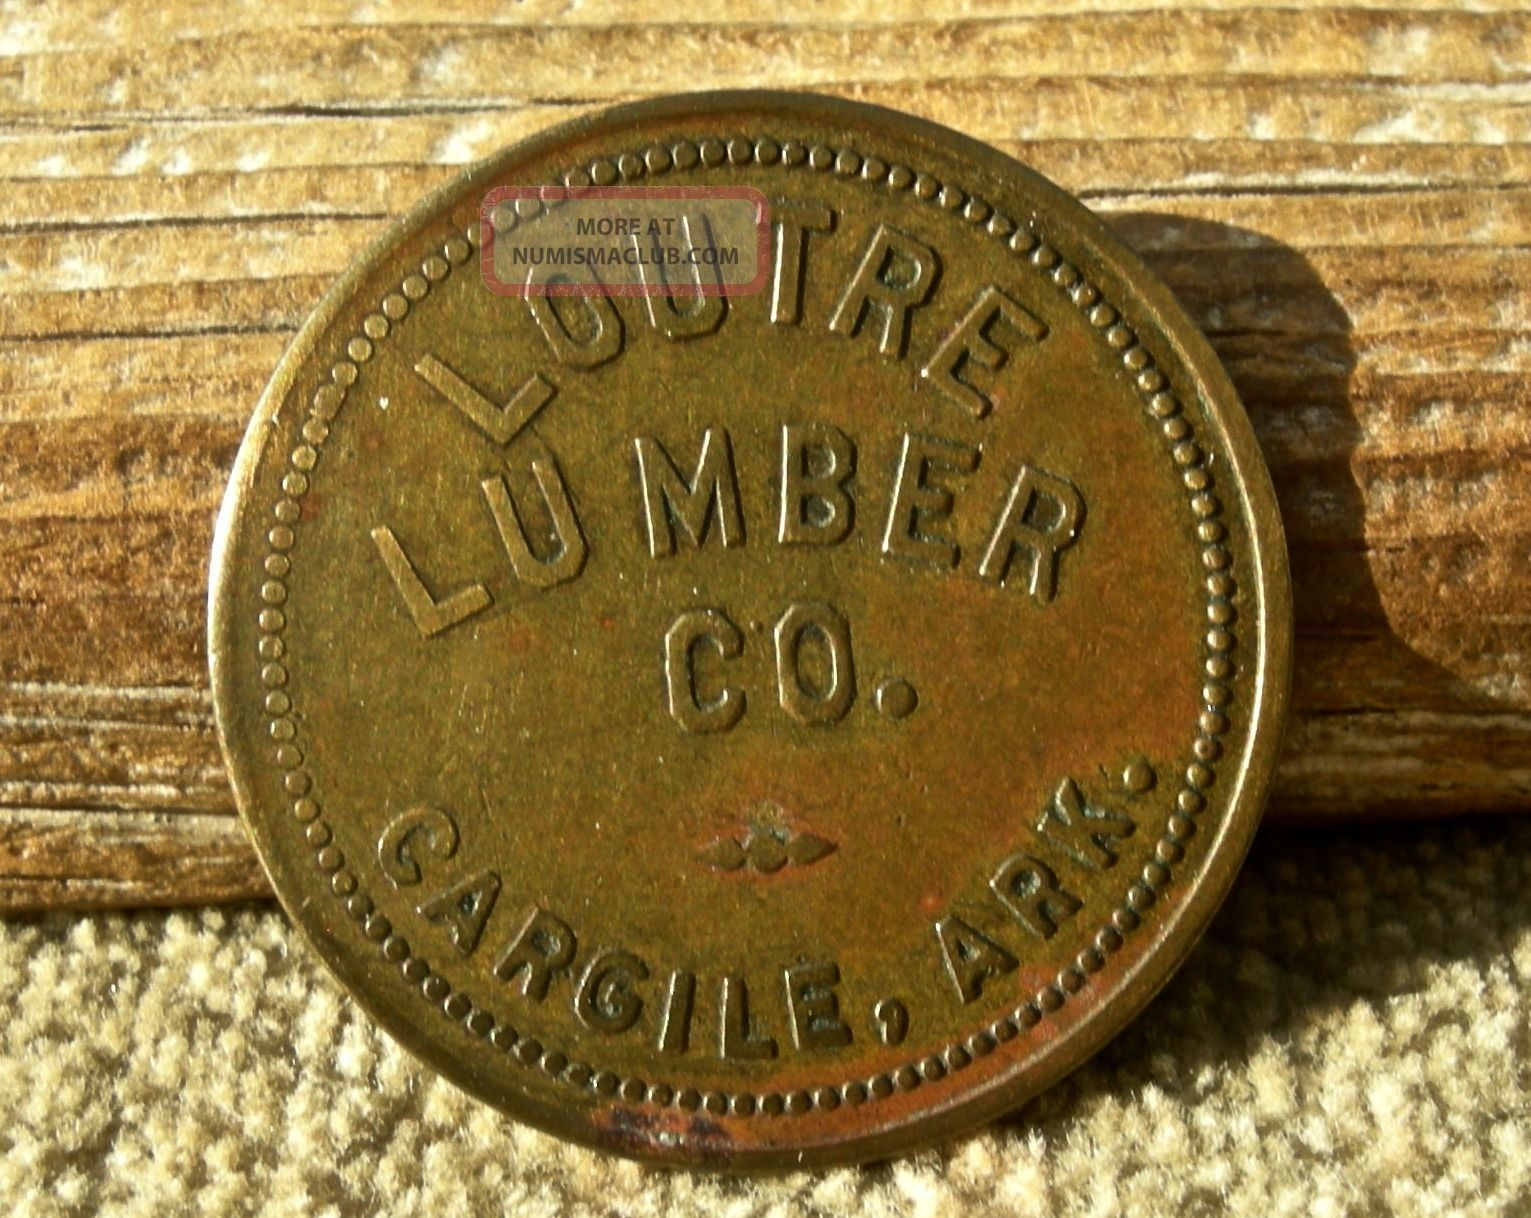 Ca 1920 Cargile Arkansas Ar (ghost Town? Union Co) Rare R8 Loutre Lumber Token Exonumia photo